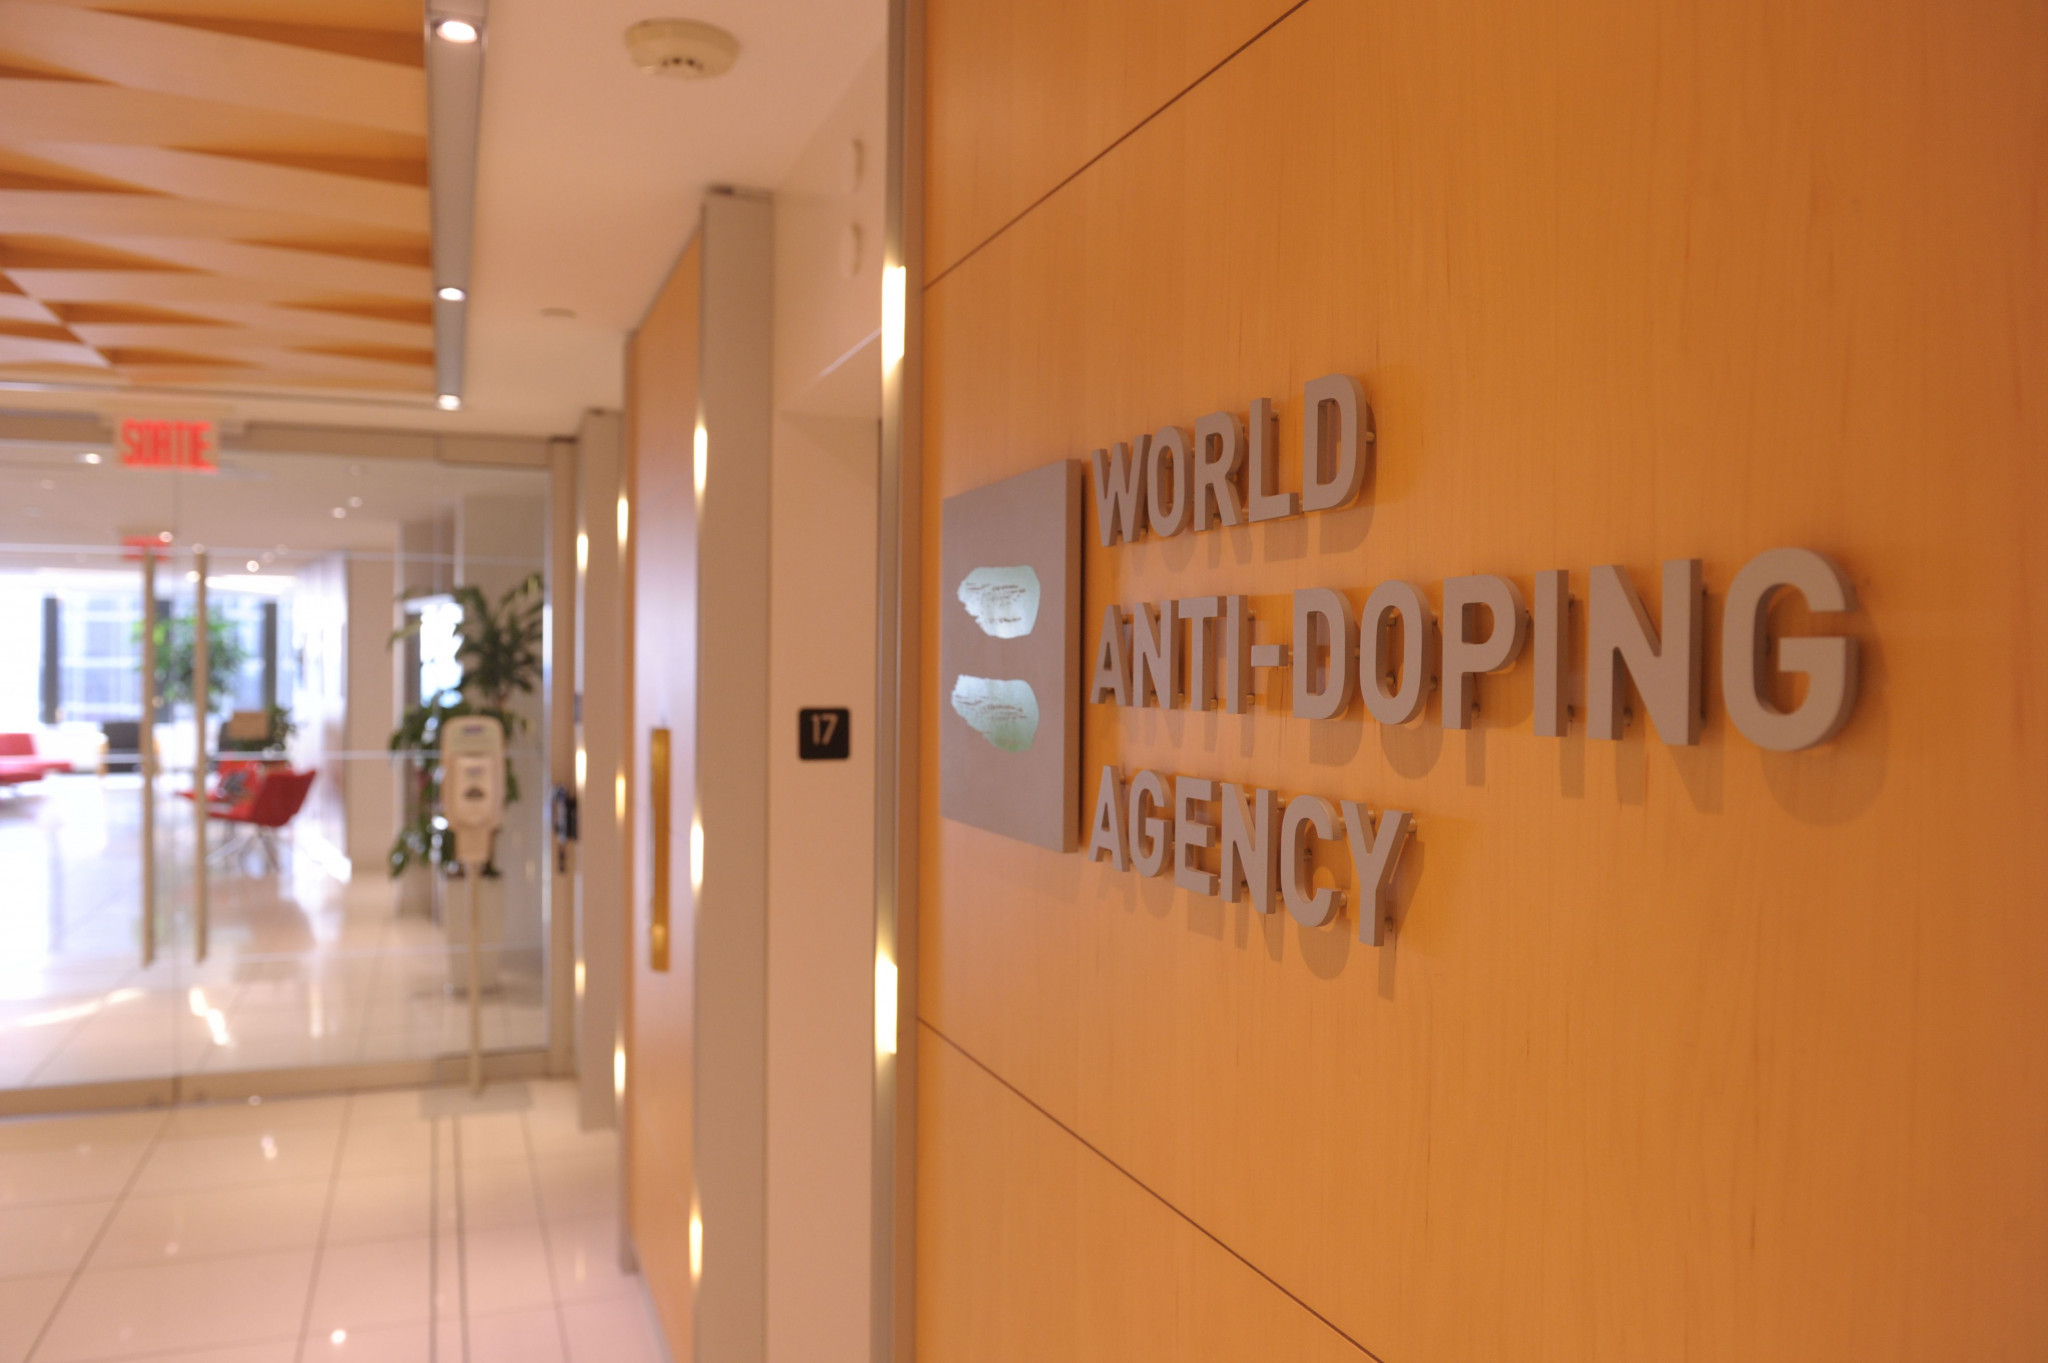 WADA join SIA in appealing Australian swimmer Jack's two-year doping ban